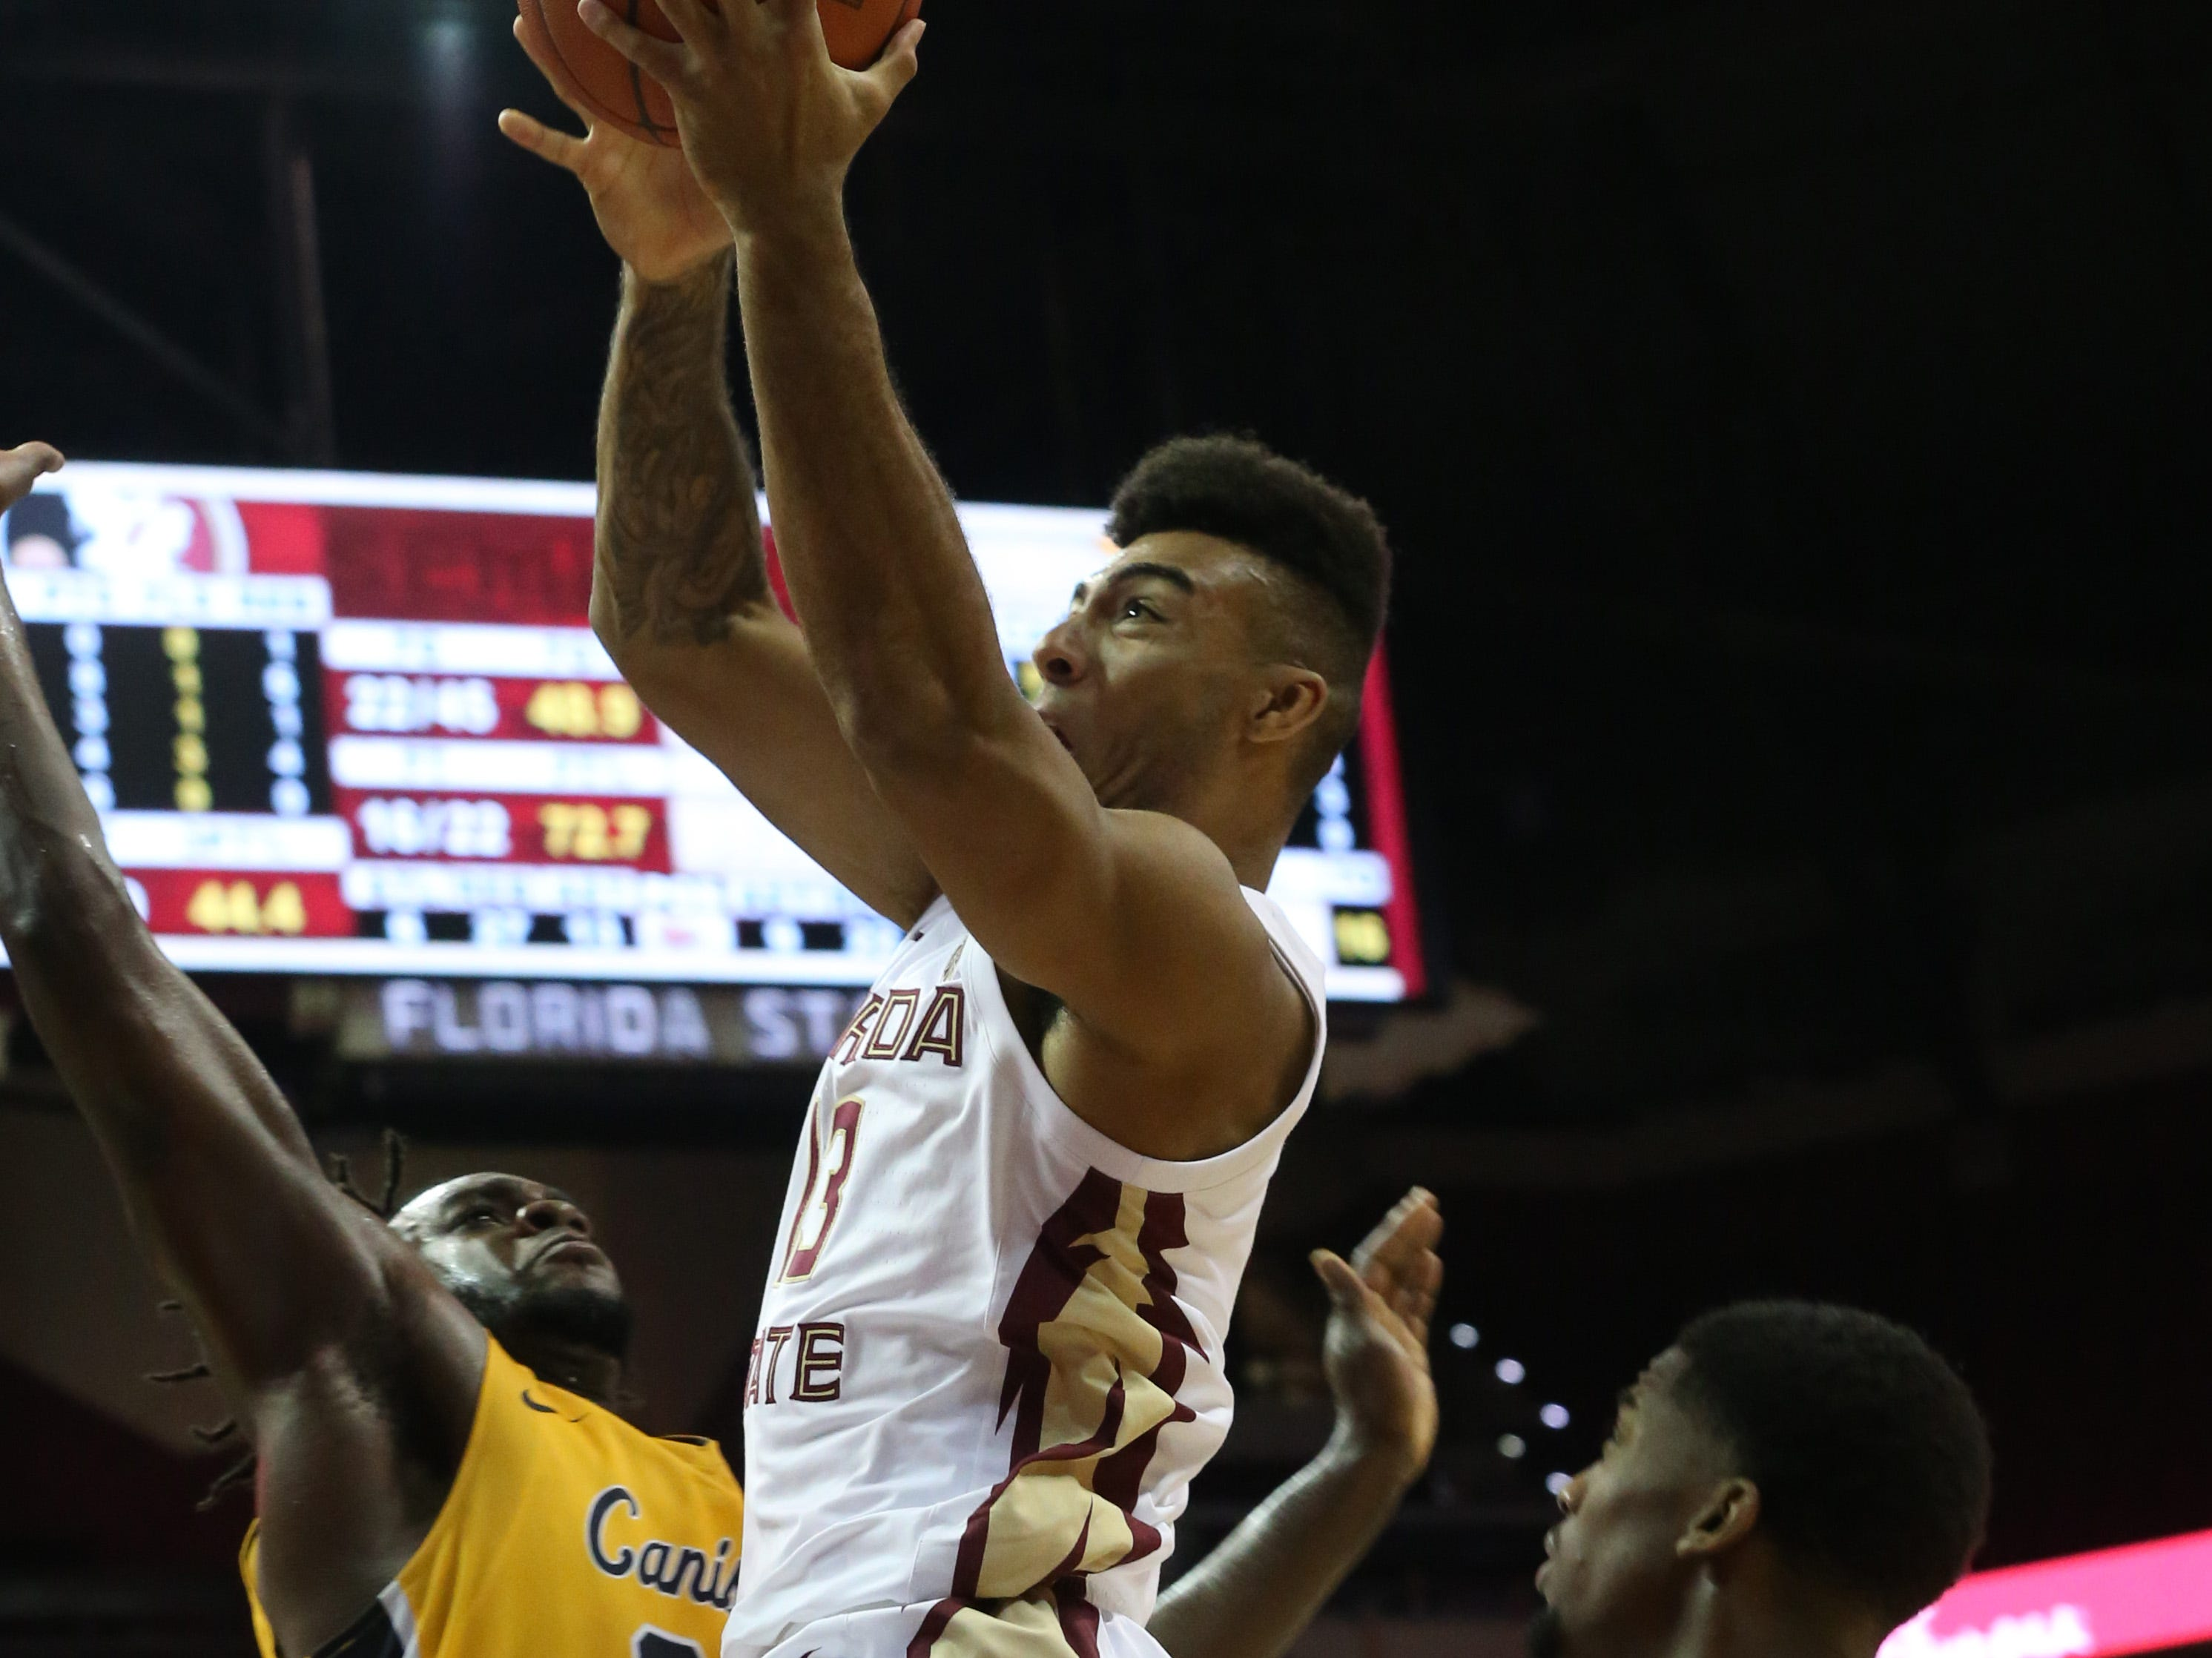 Florida State Seminoles guard Anthony Polite (13) drives the ball in for a layup as the Florida State Seminoles host the Canisius Golden Griffins for basketball in the Tucker Civic Center, Monday, Nov. 19, 2018.